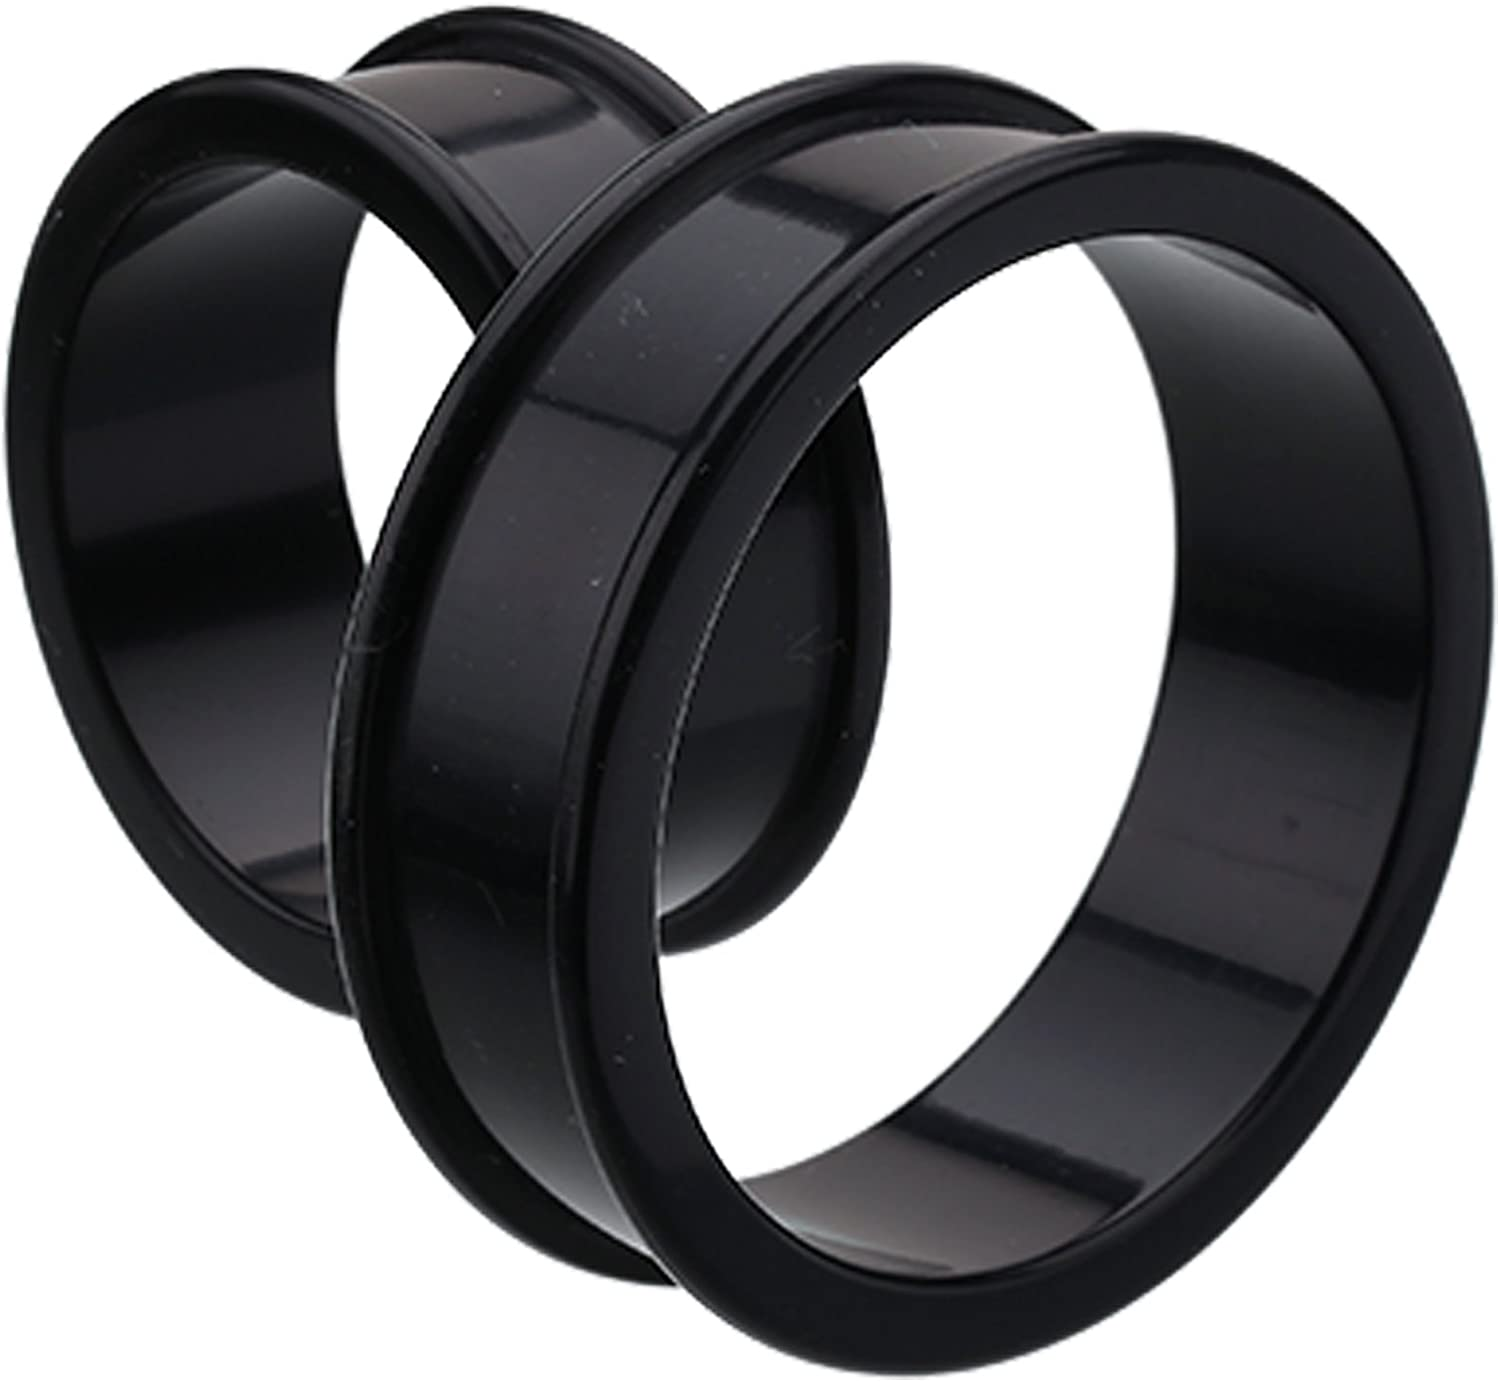 Sold as a Pair Black Plugs Supersize Flexible Silicone Double Flared Ear Tunnel Plug Cosmic